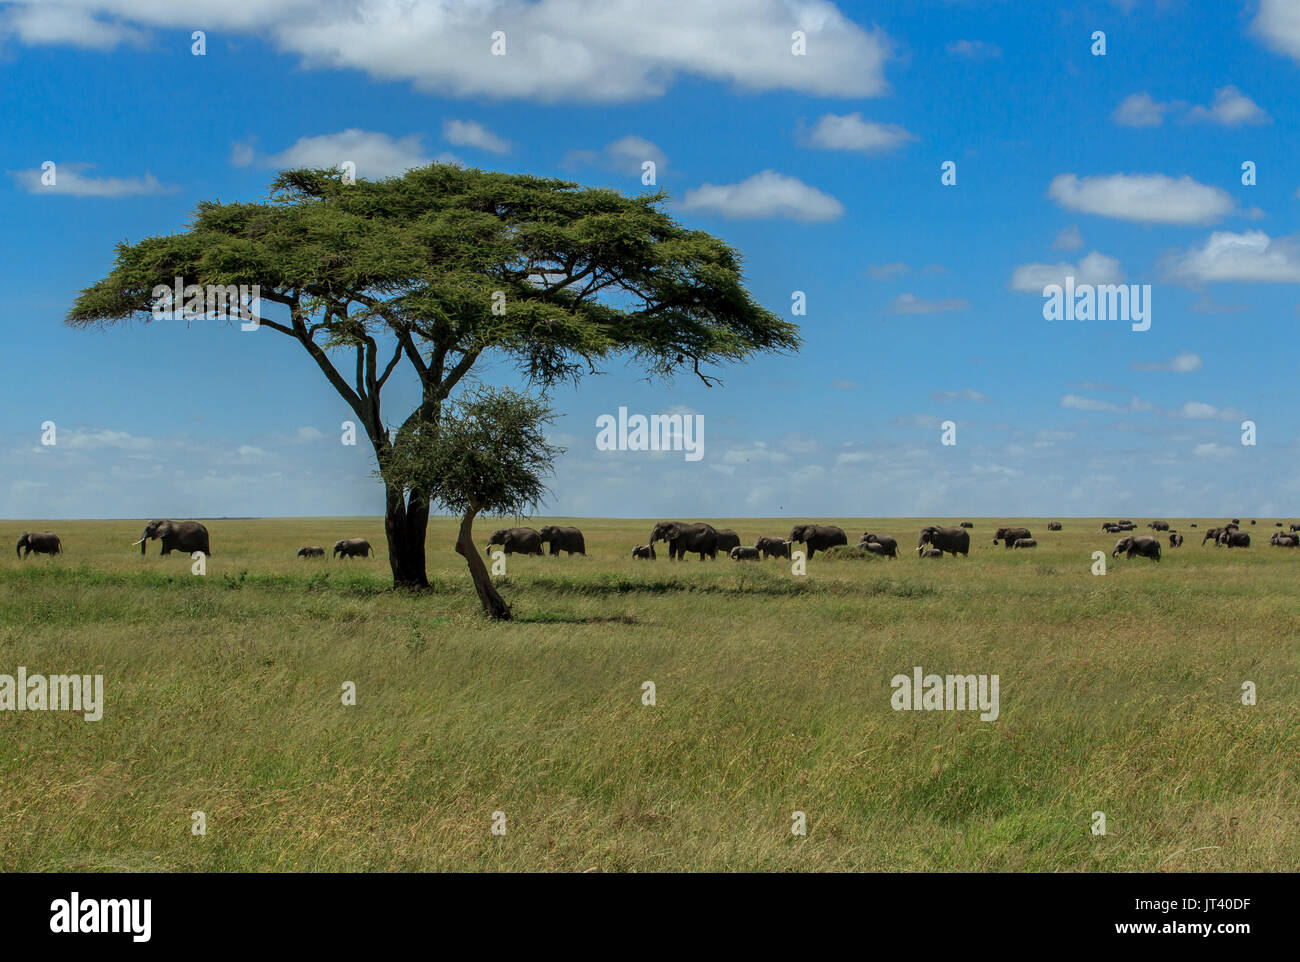 A herd of Elephants grazing in the grasslands of the Serengeti Stock Photo